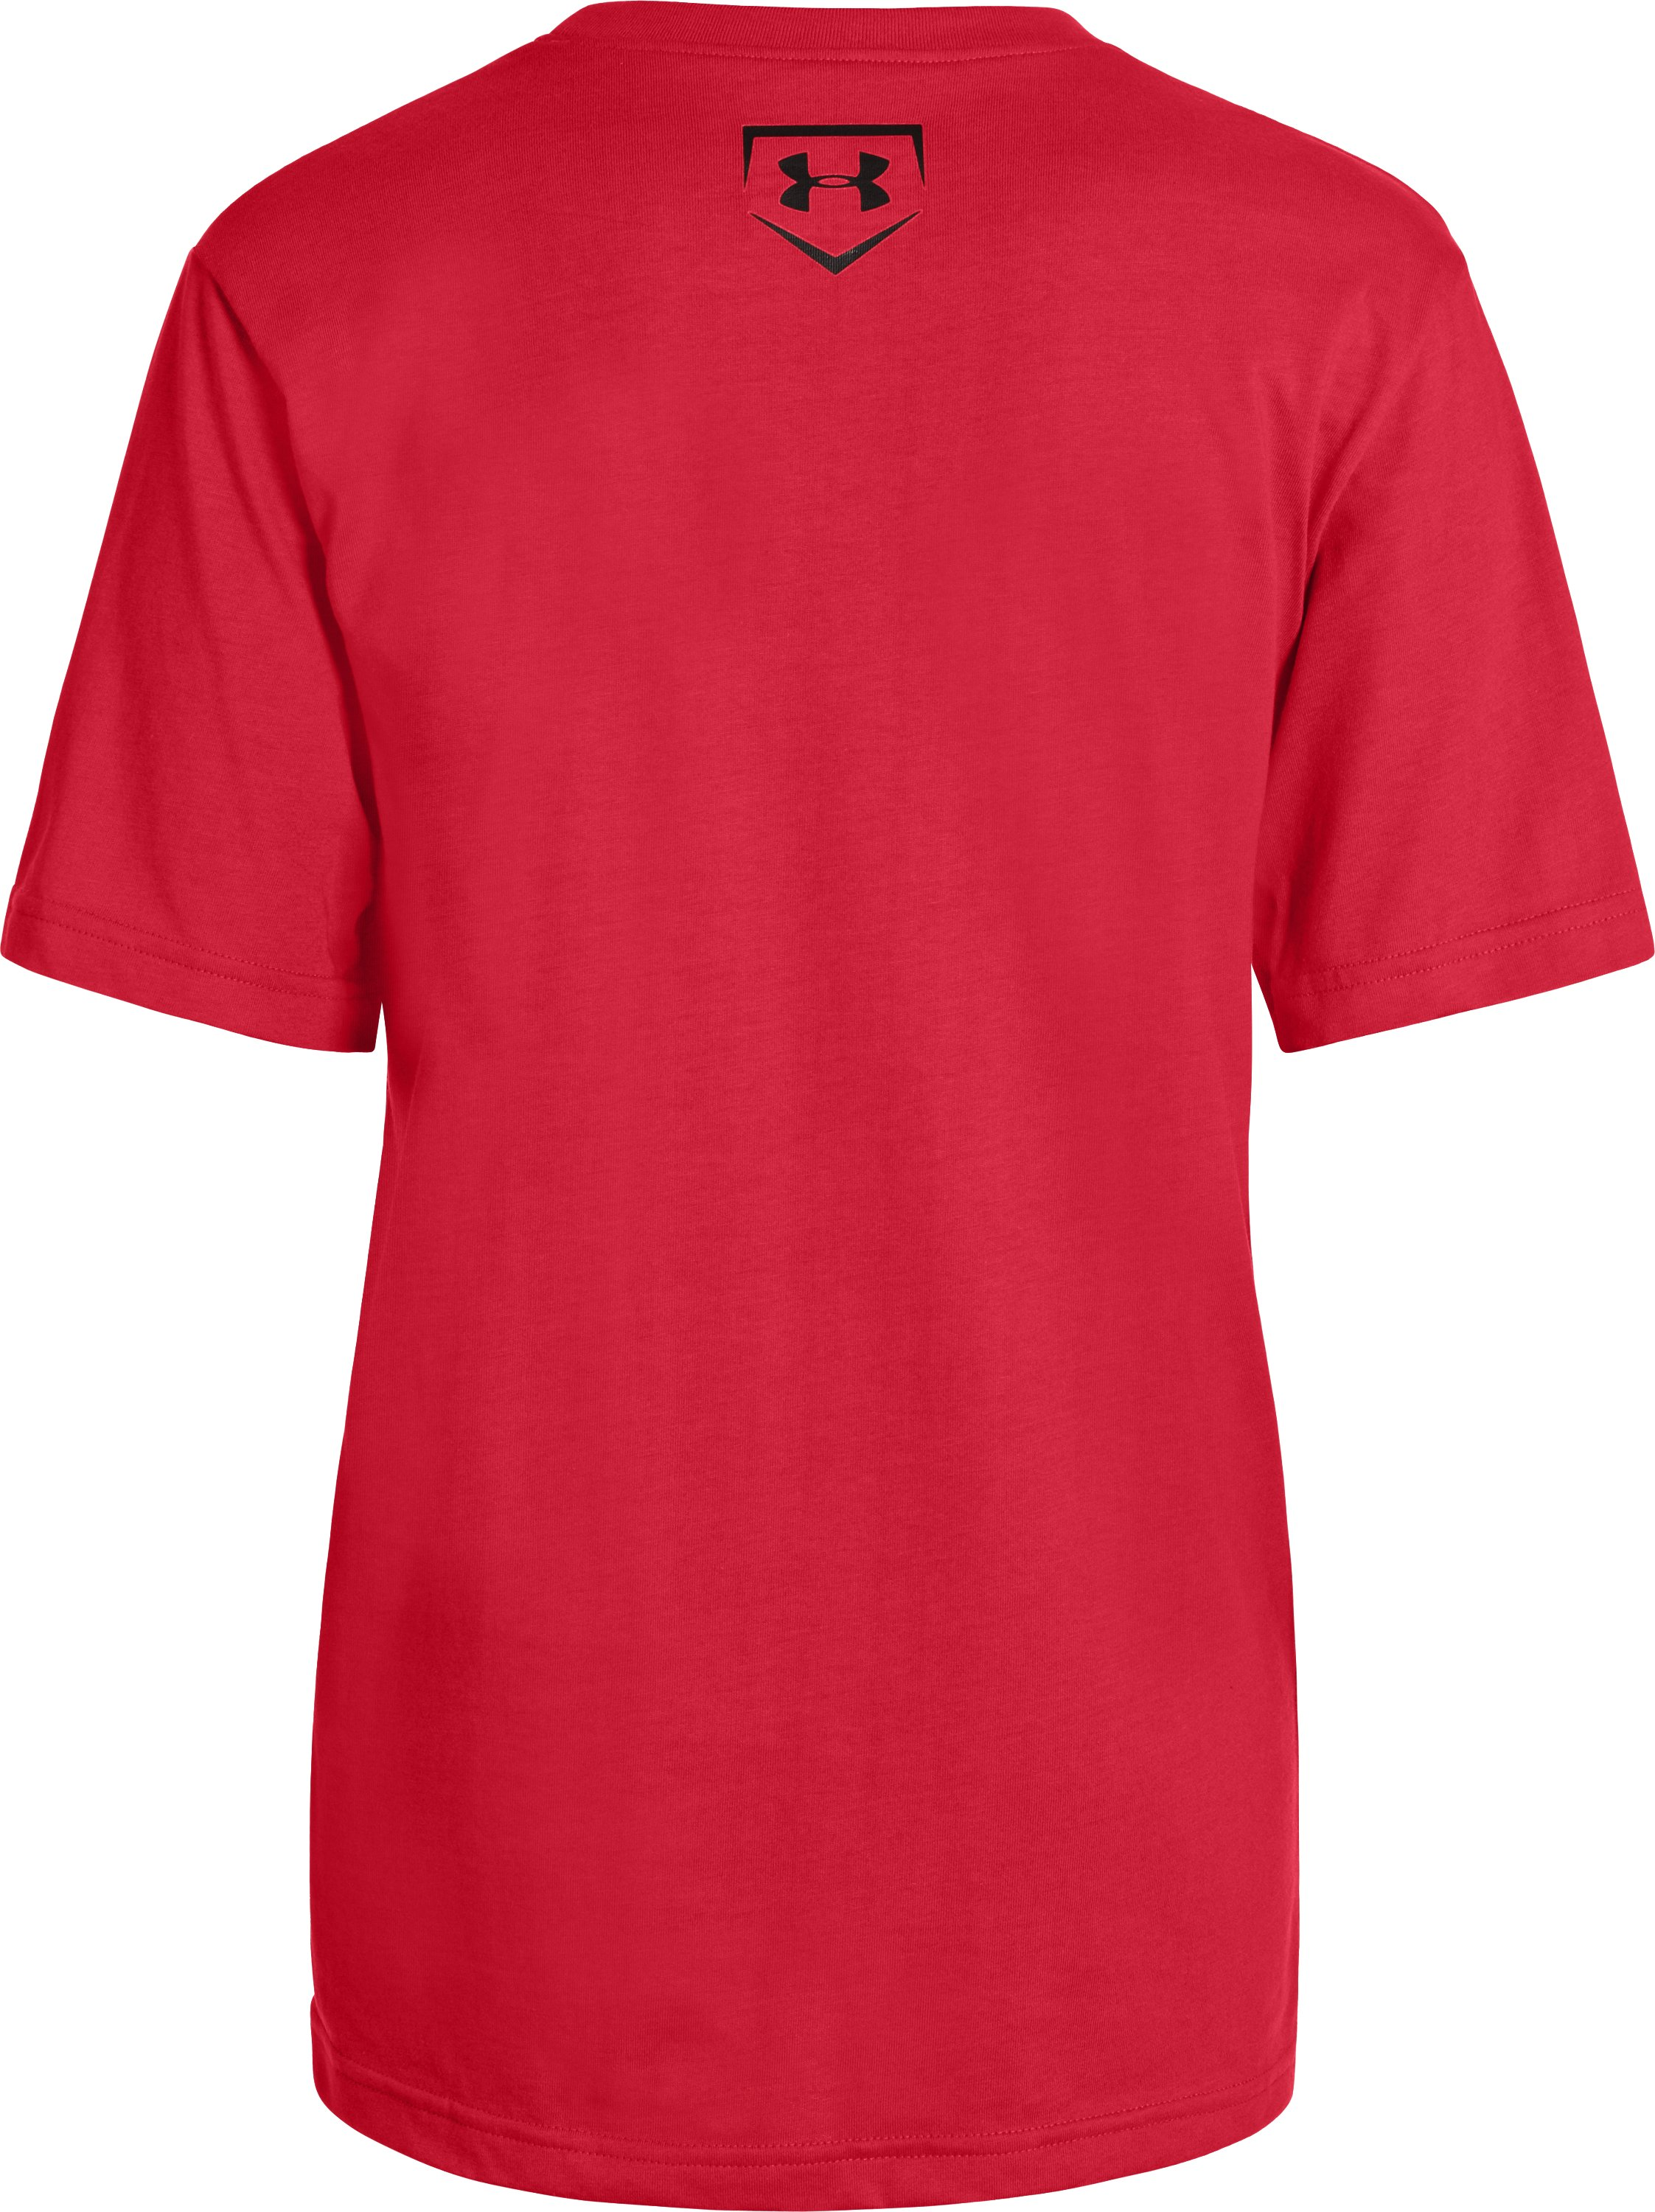 Boys' UA Clutch T-Shirt, Red